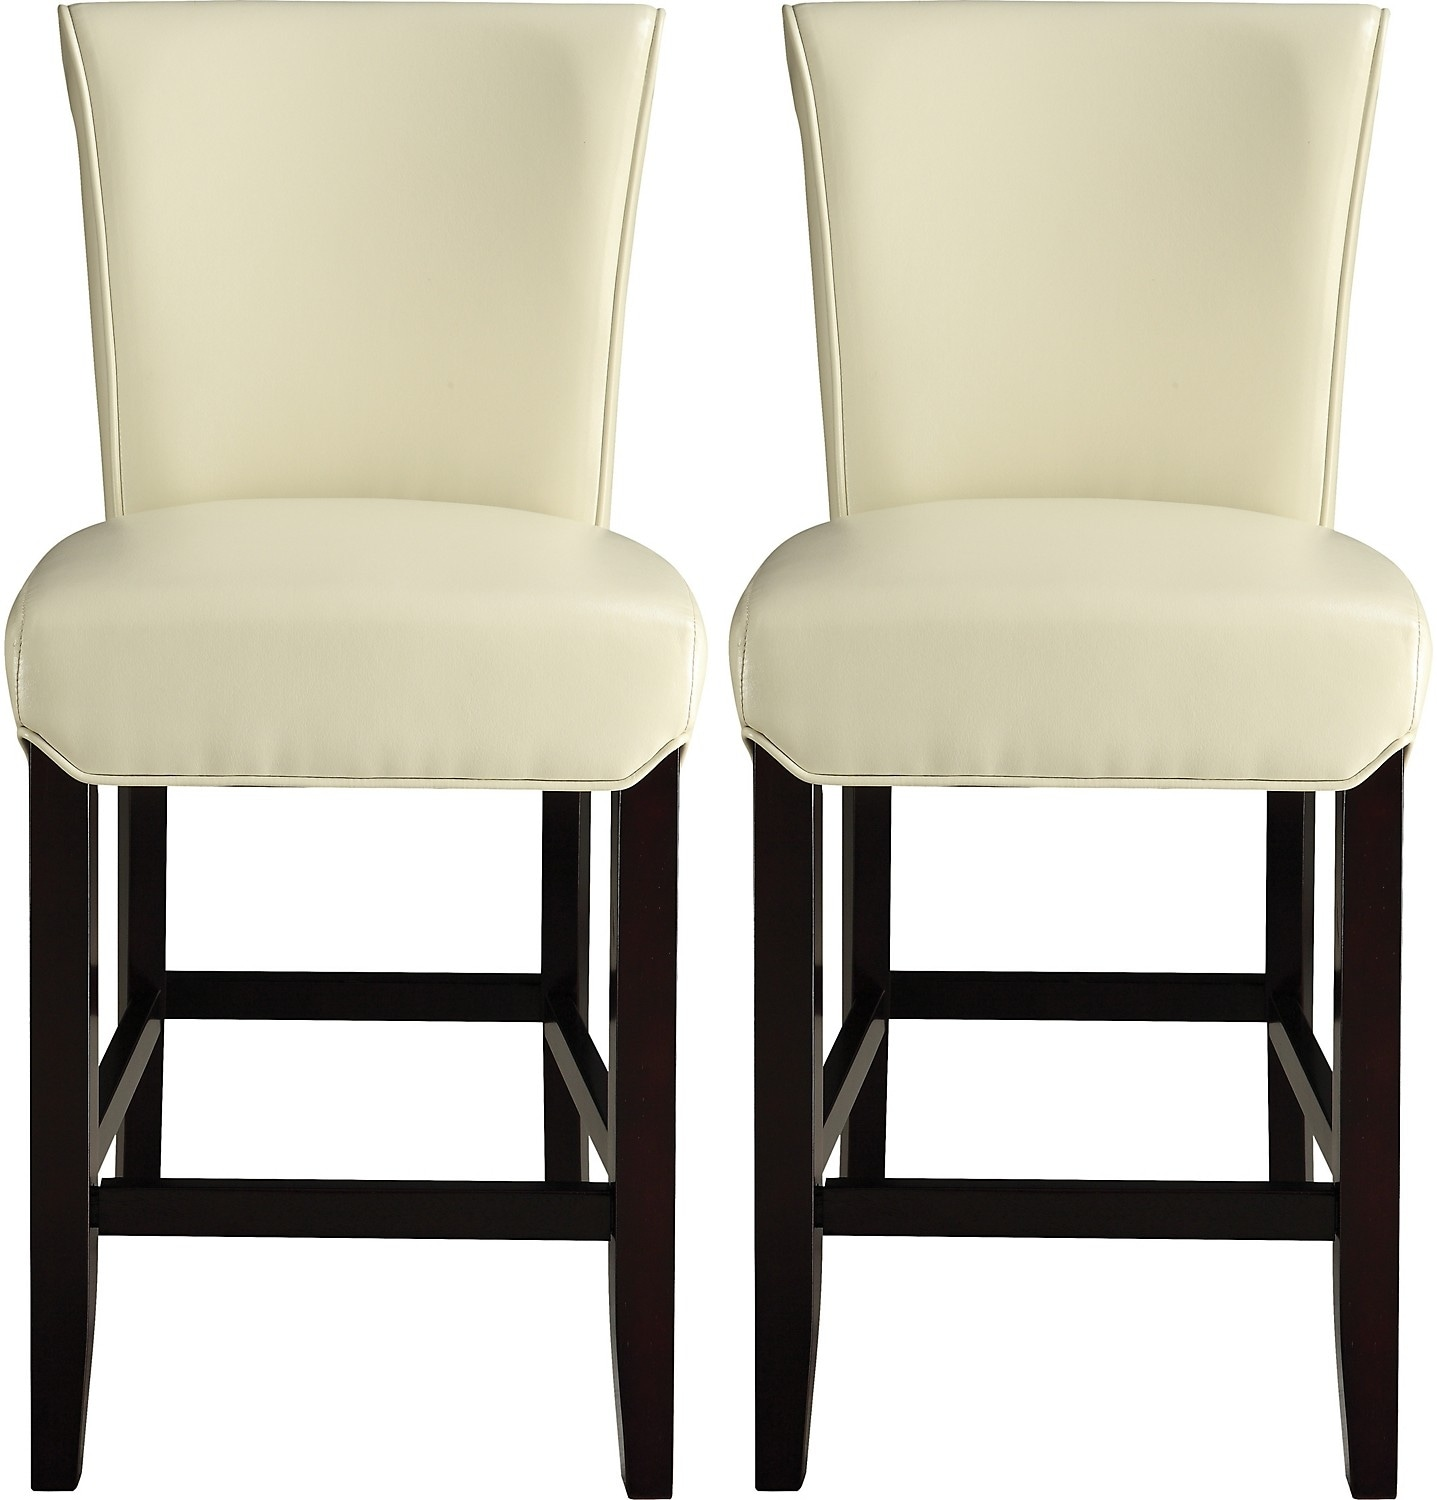 Brogan Counter-Height Dining Stool Set of 2 – Ivory